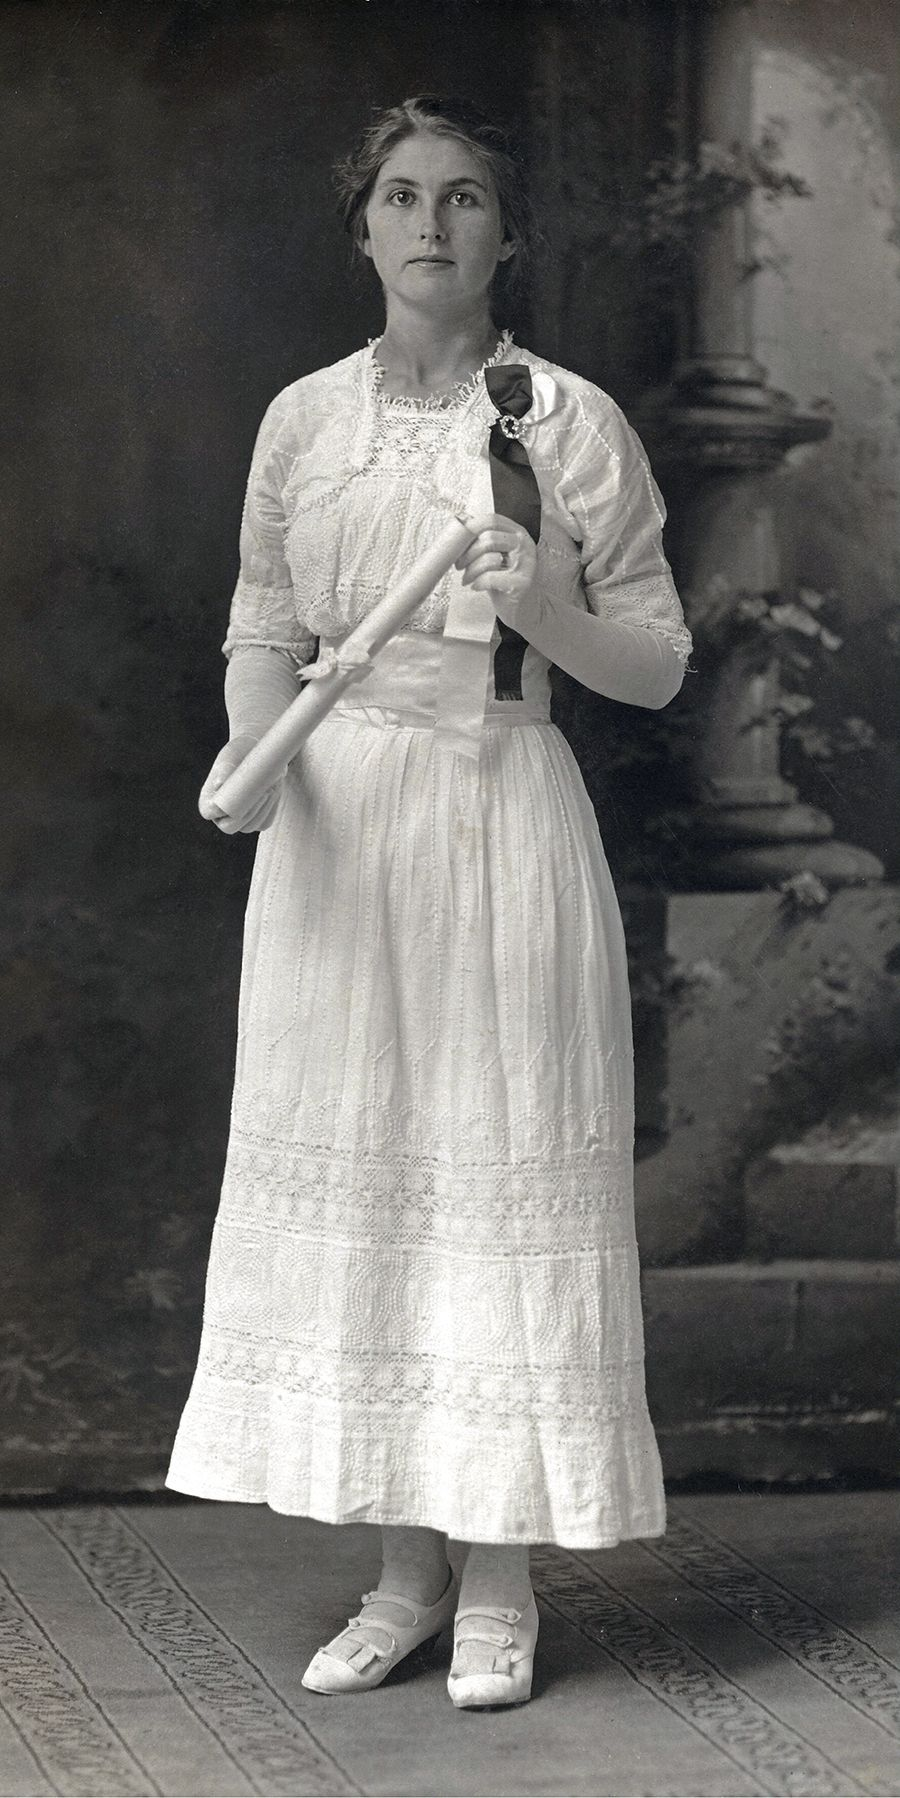 Young woman on graduation day, 1918, Howell County, Missouri